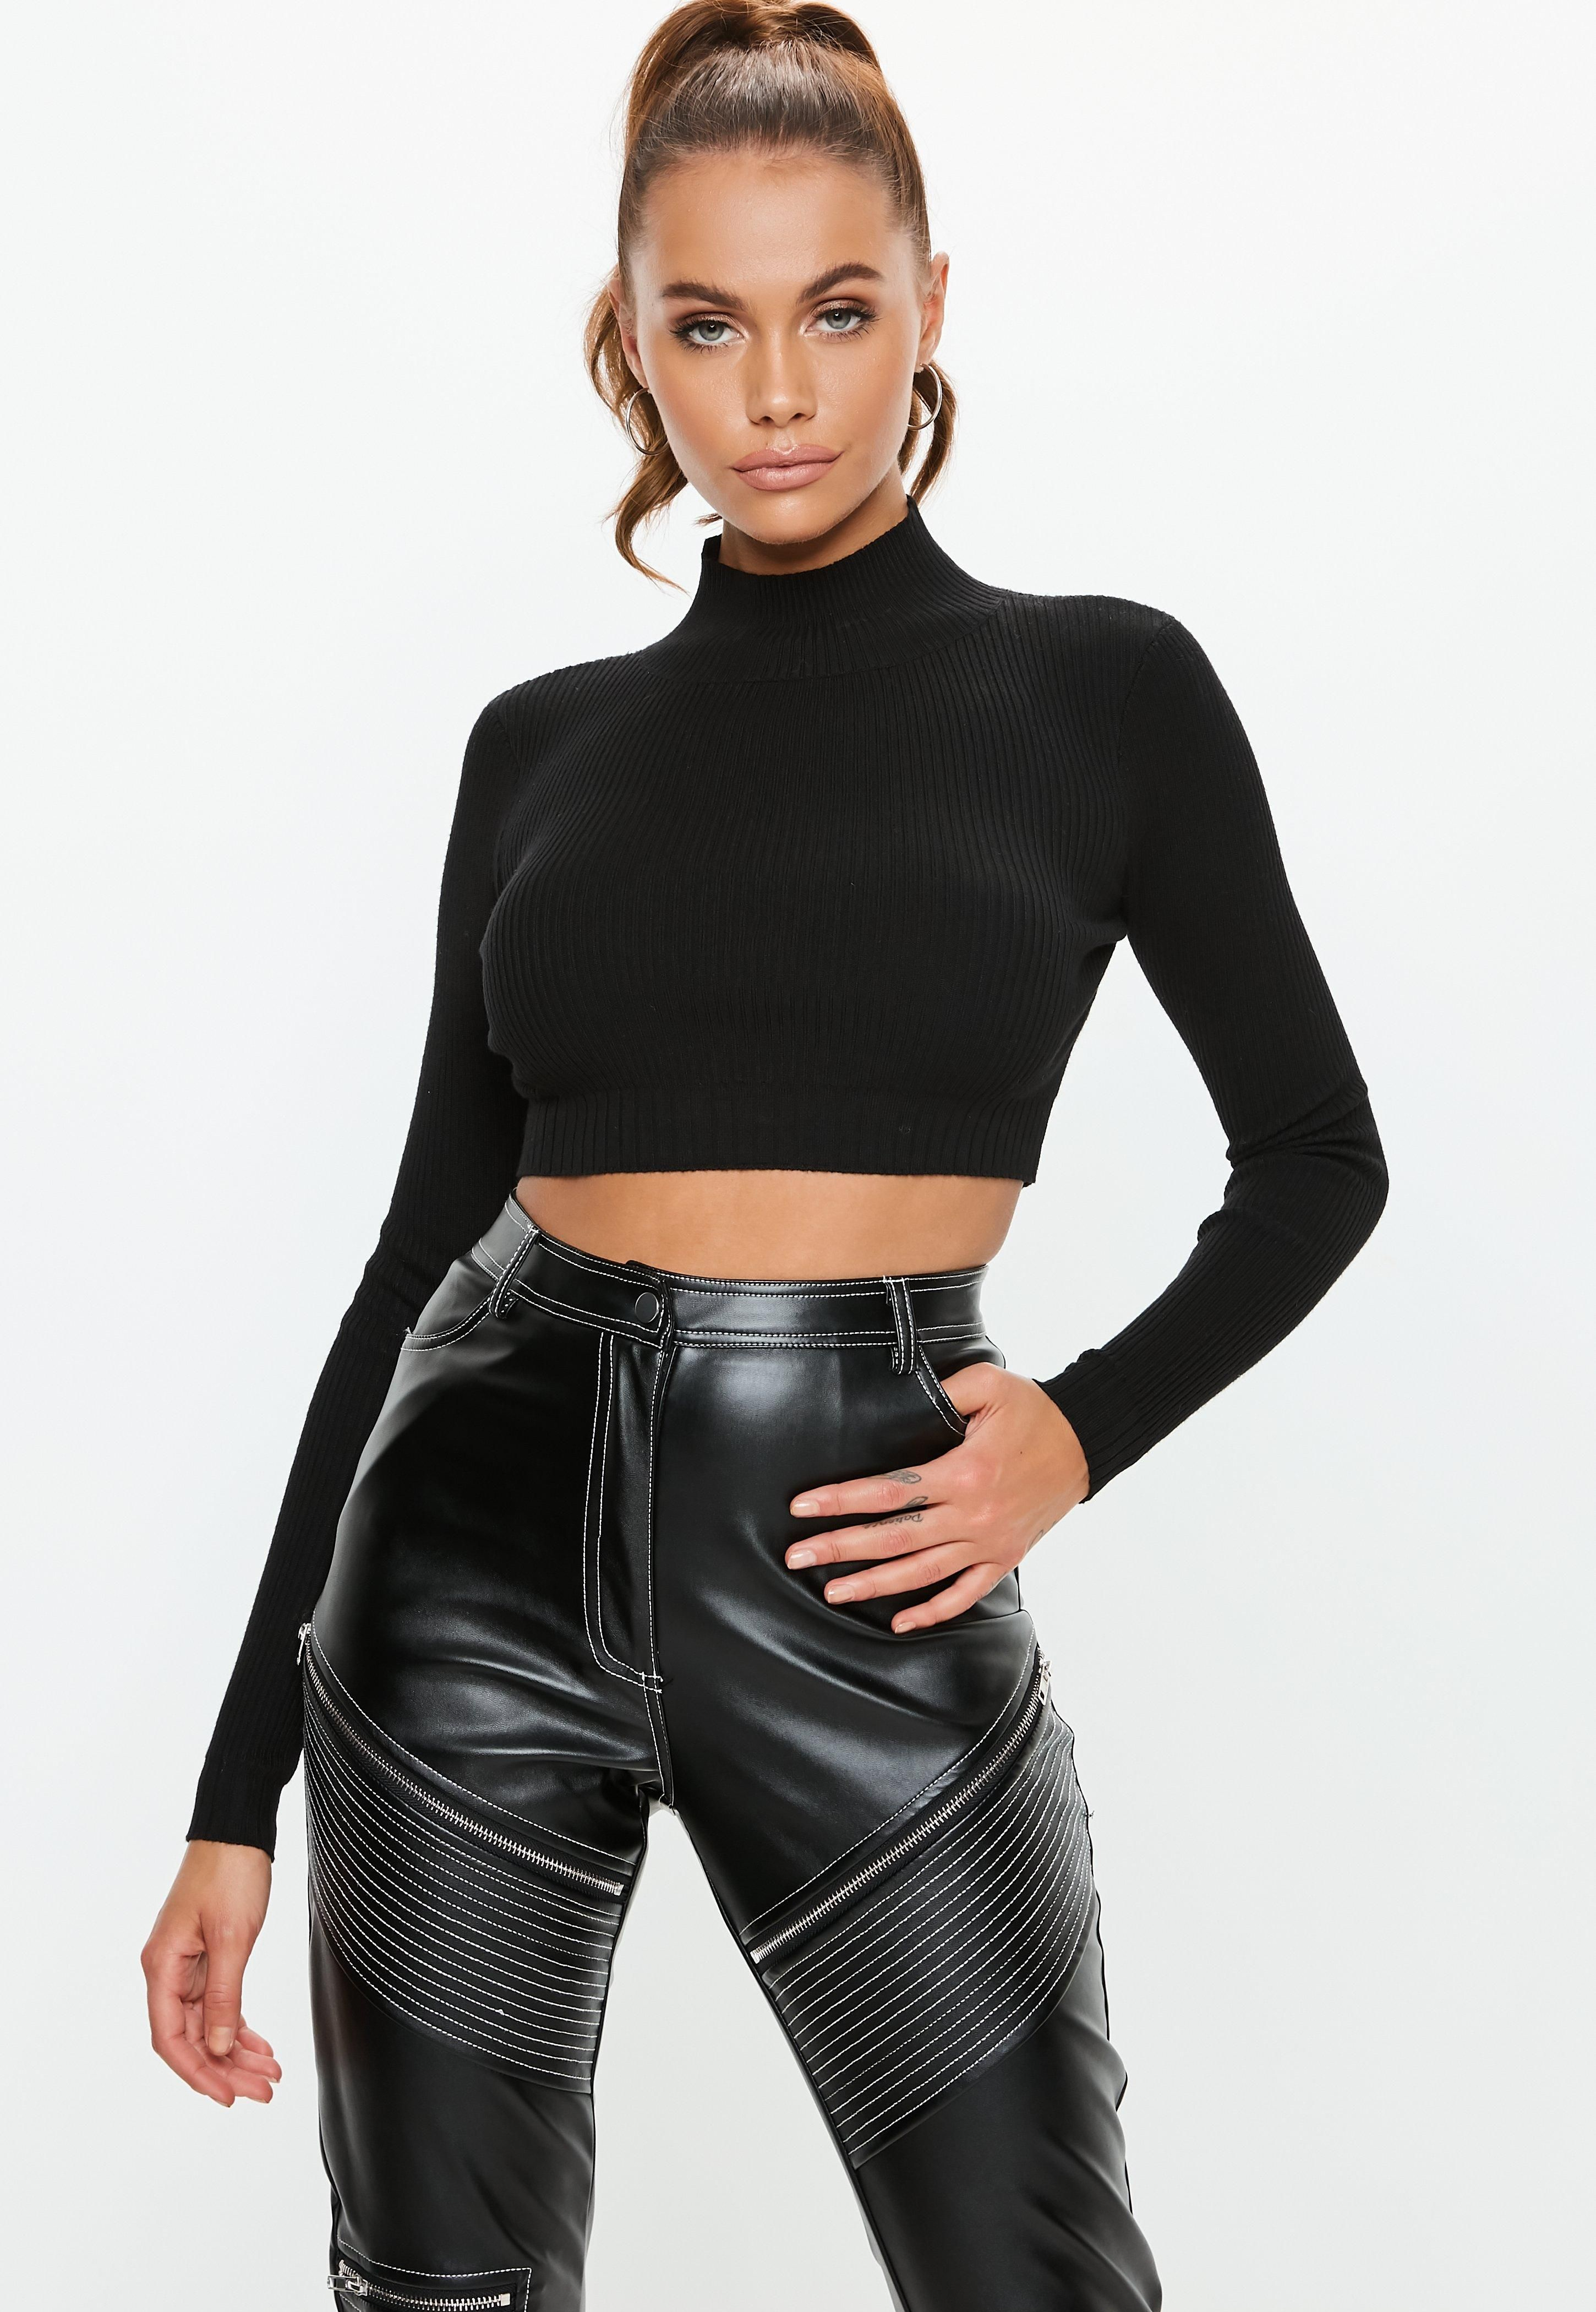 cb69129a88d70 black-knitted-high-neck-ribbed-crop-top